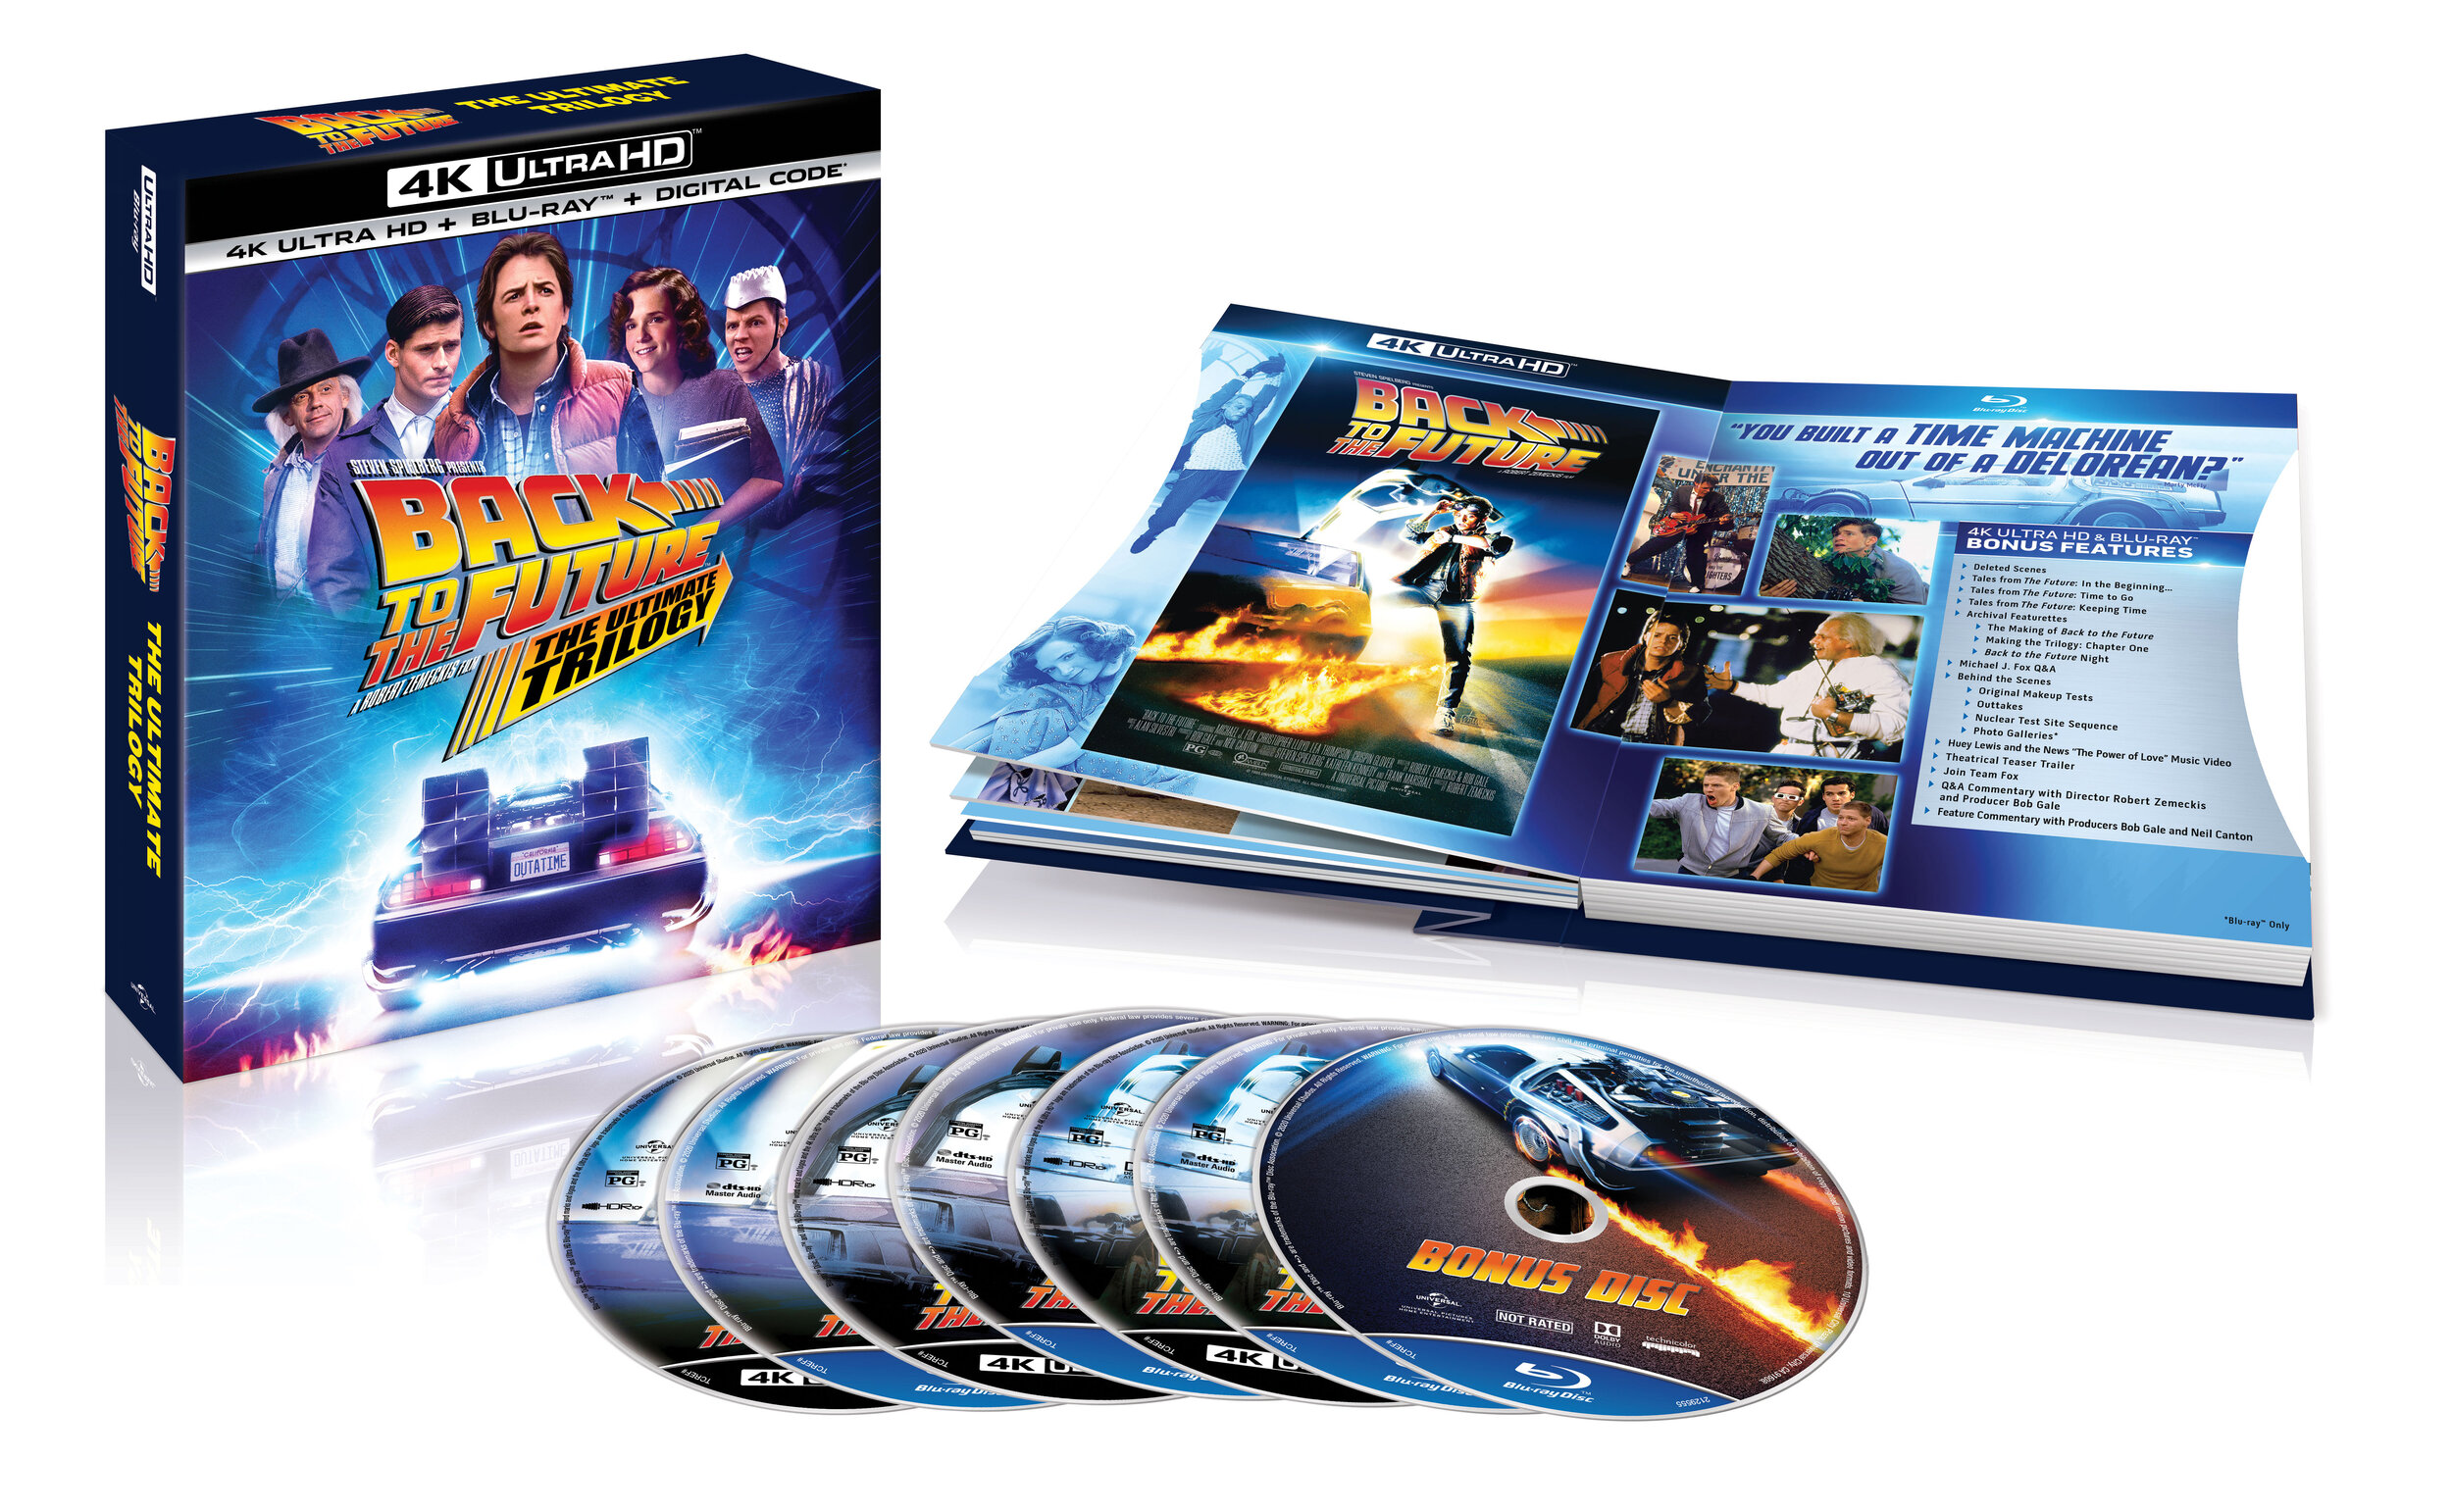 Back To The Future Trilogy One Of The Biggest Motion Picture Trilogies Comes To 4k Ultra Hd For The First Time Ever